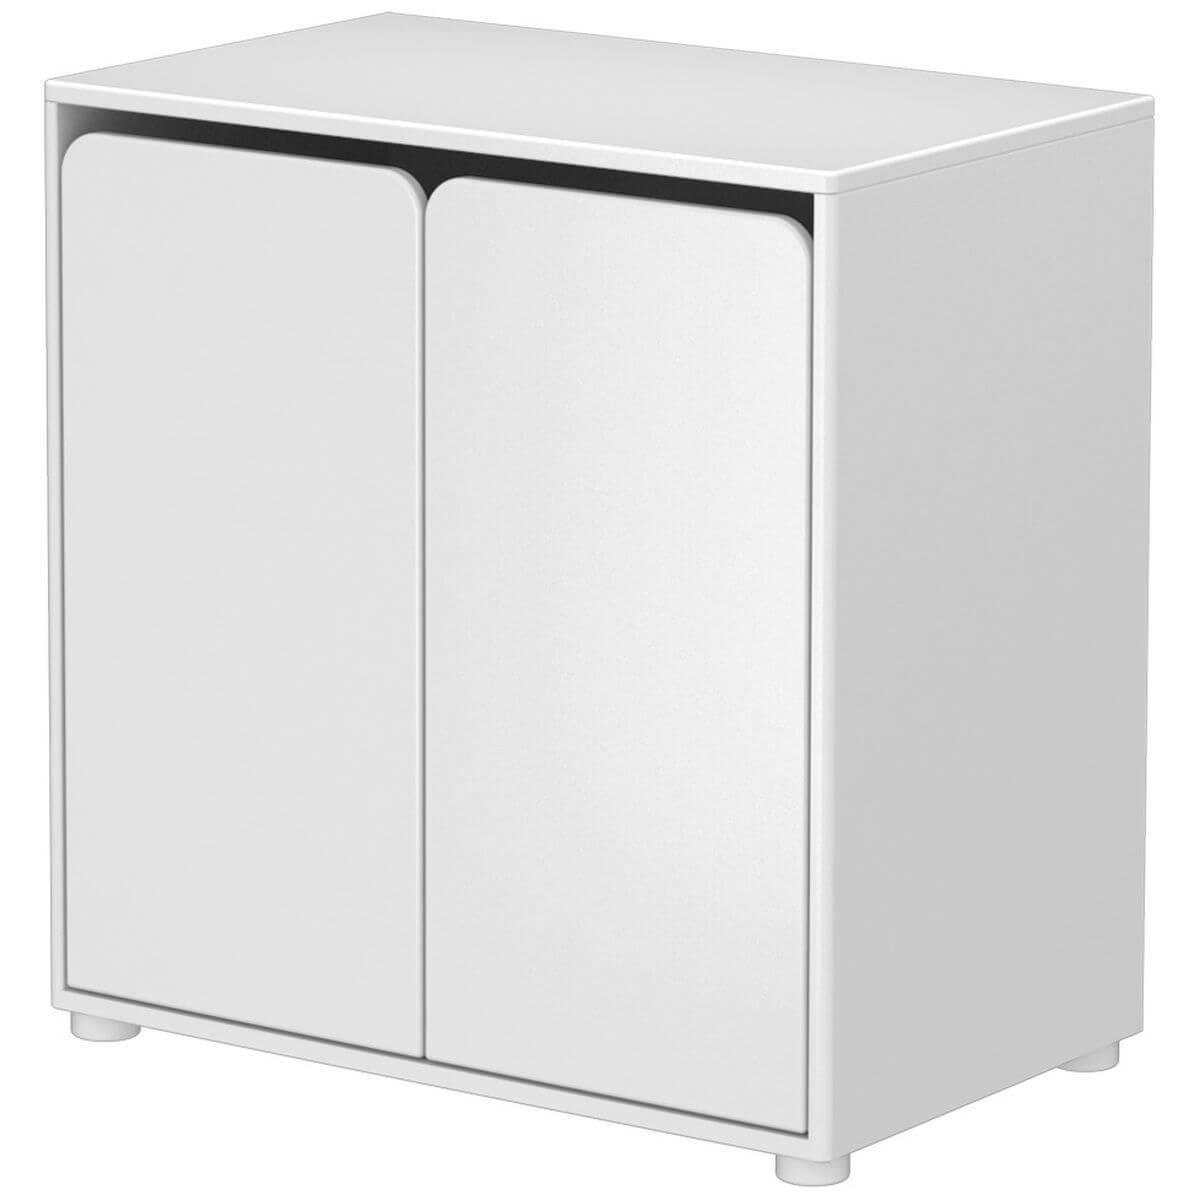 CABBY by Flexa Armoire 2 portes Blanc